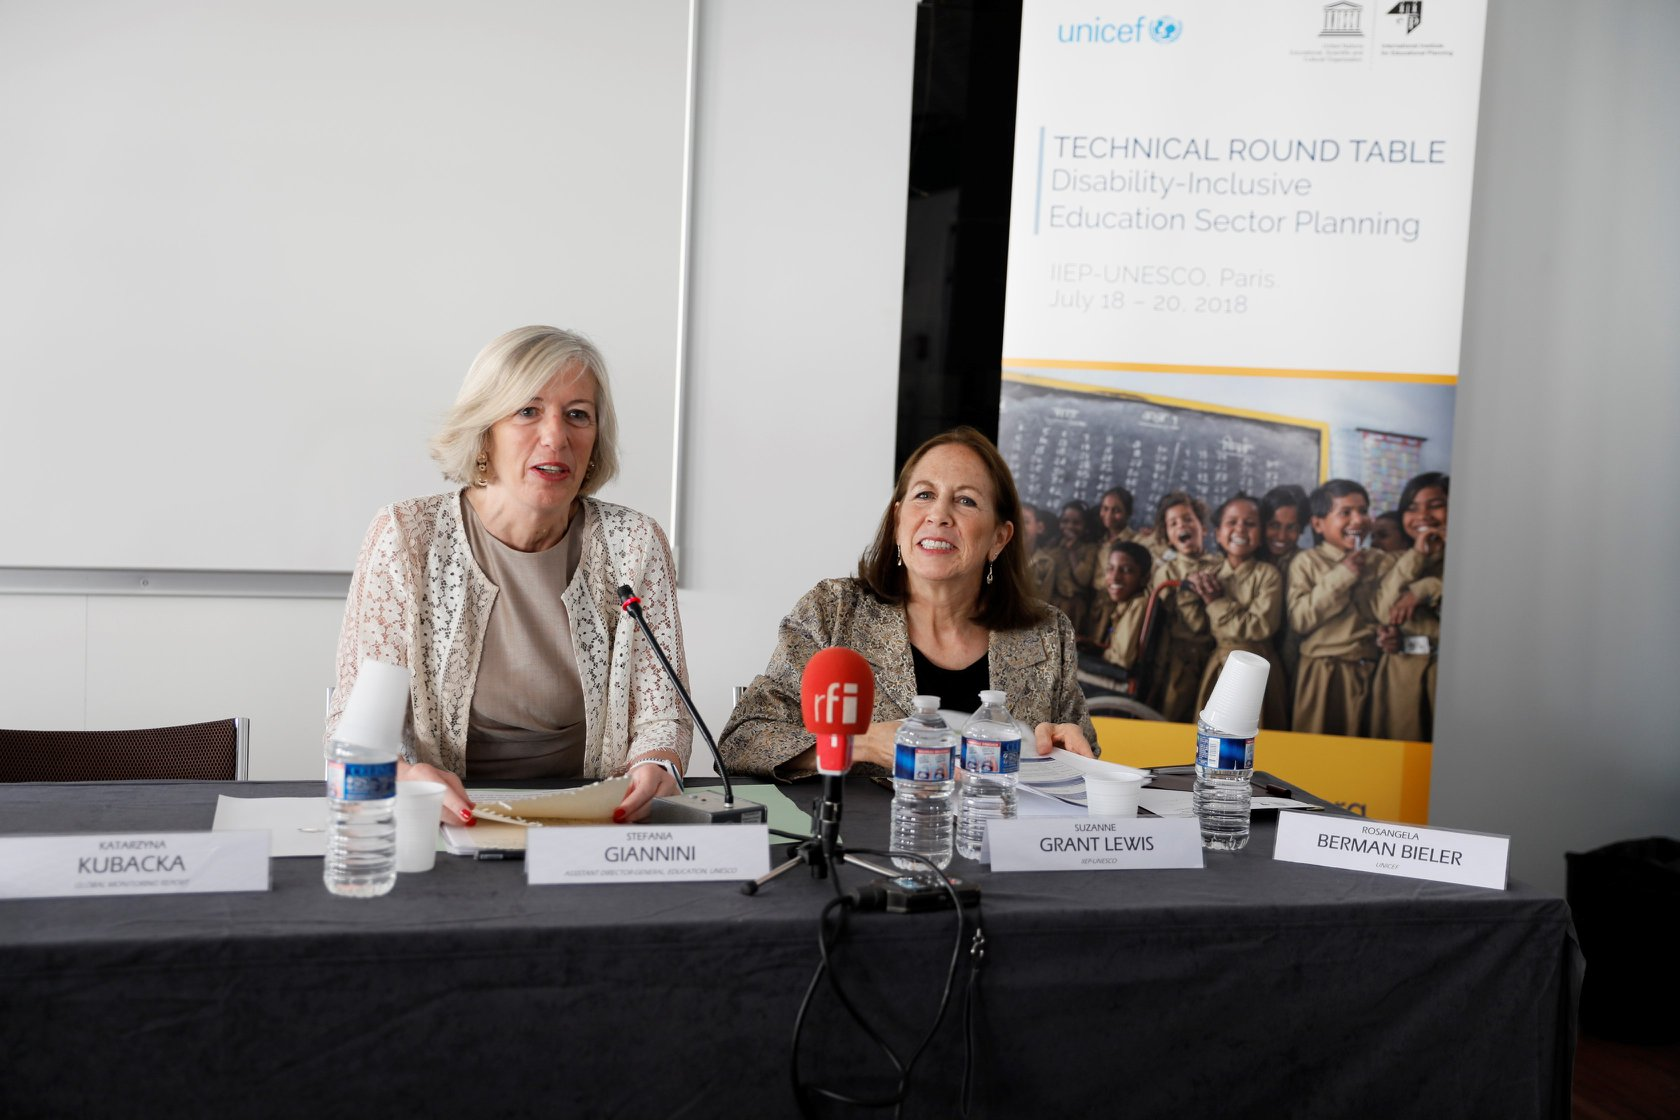 UNESCO Assistant Director for Education Stefania Giannini and IIEP Director Suzanne Grant Lewis